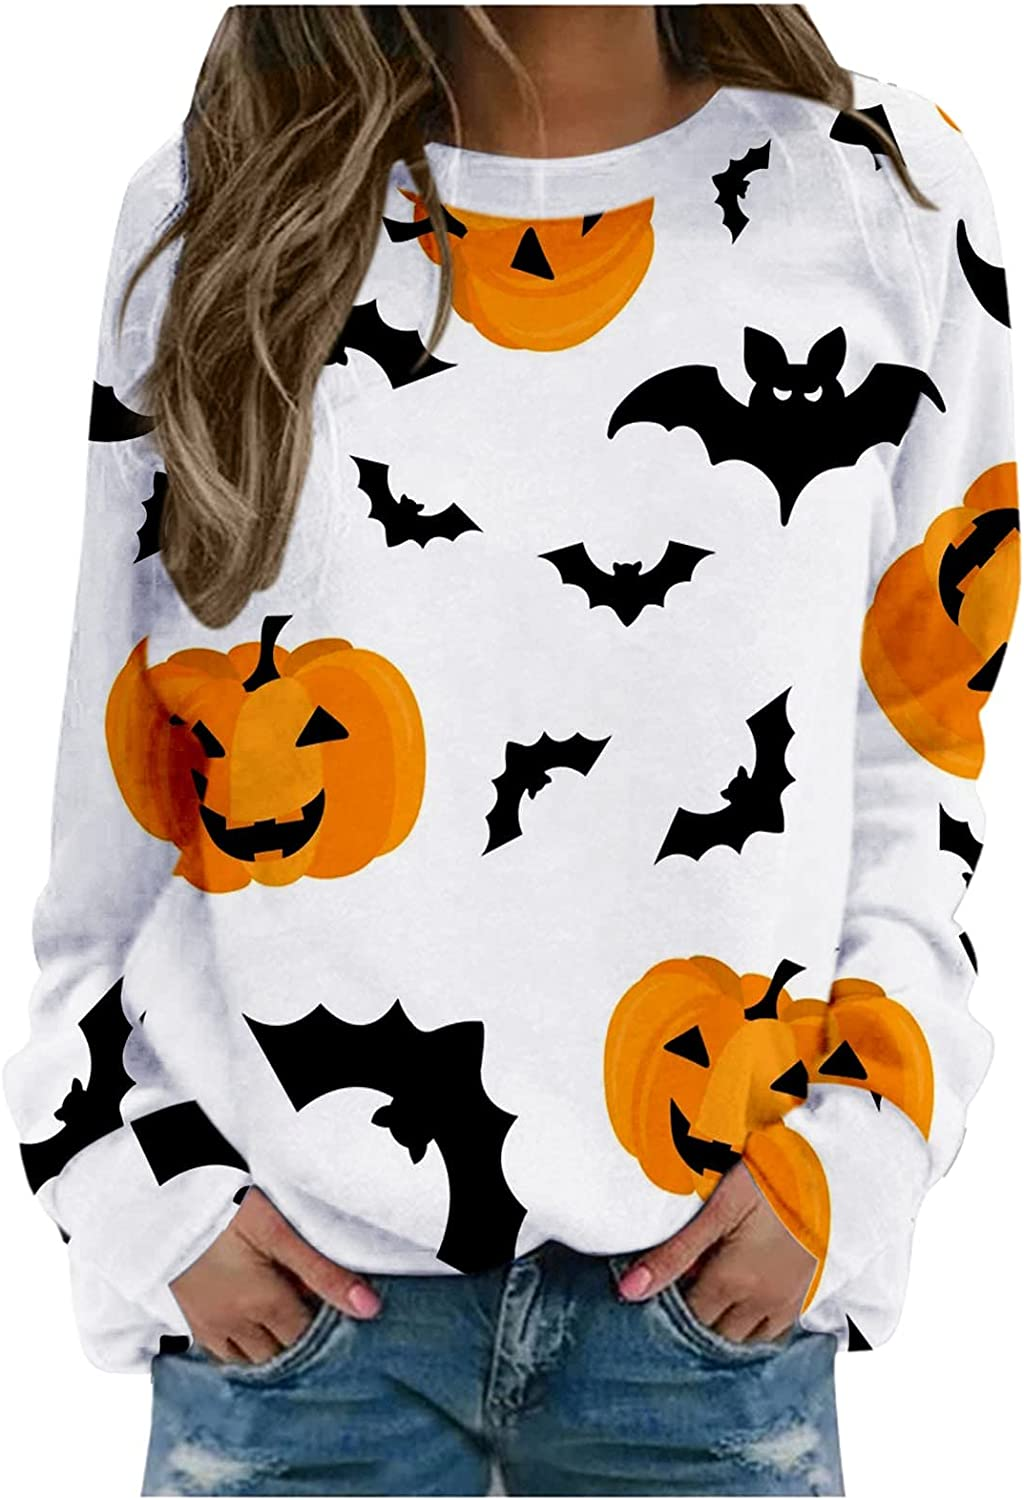 Halloween Some reservation Crewneck Sweatshirt for Our shop OFFers the best service Women Sleeve Tunic Long Casual